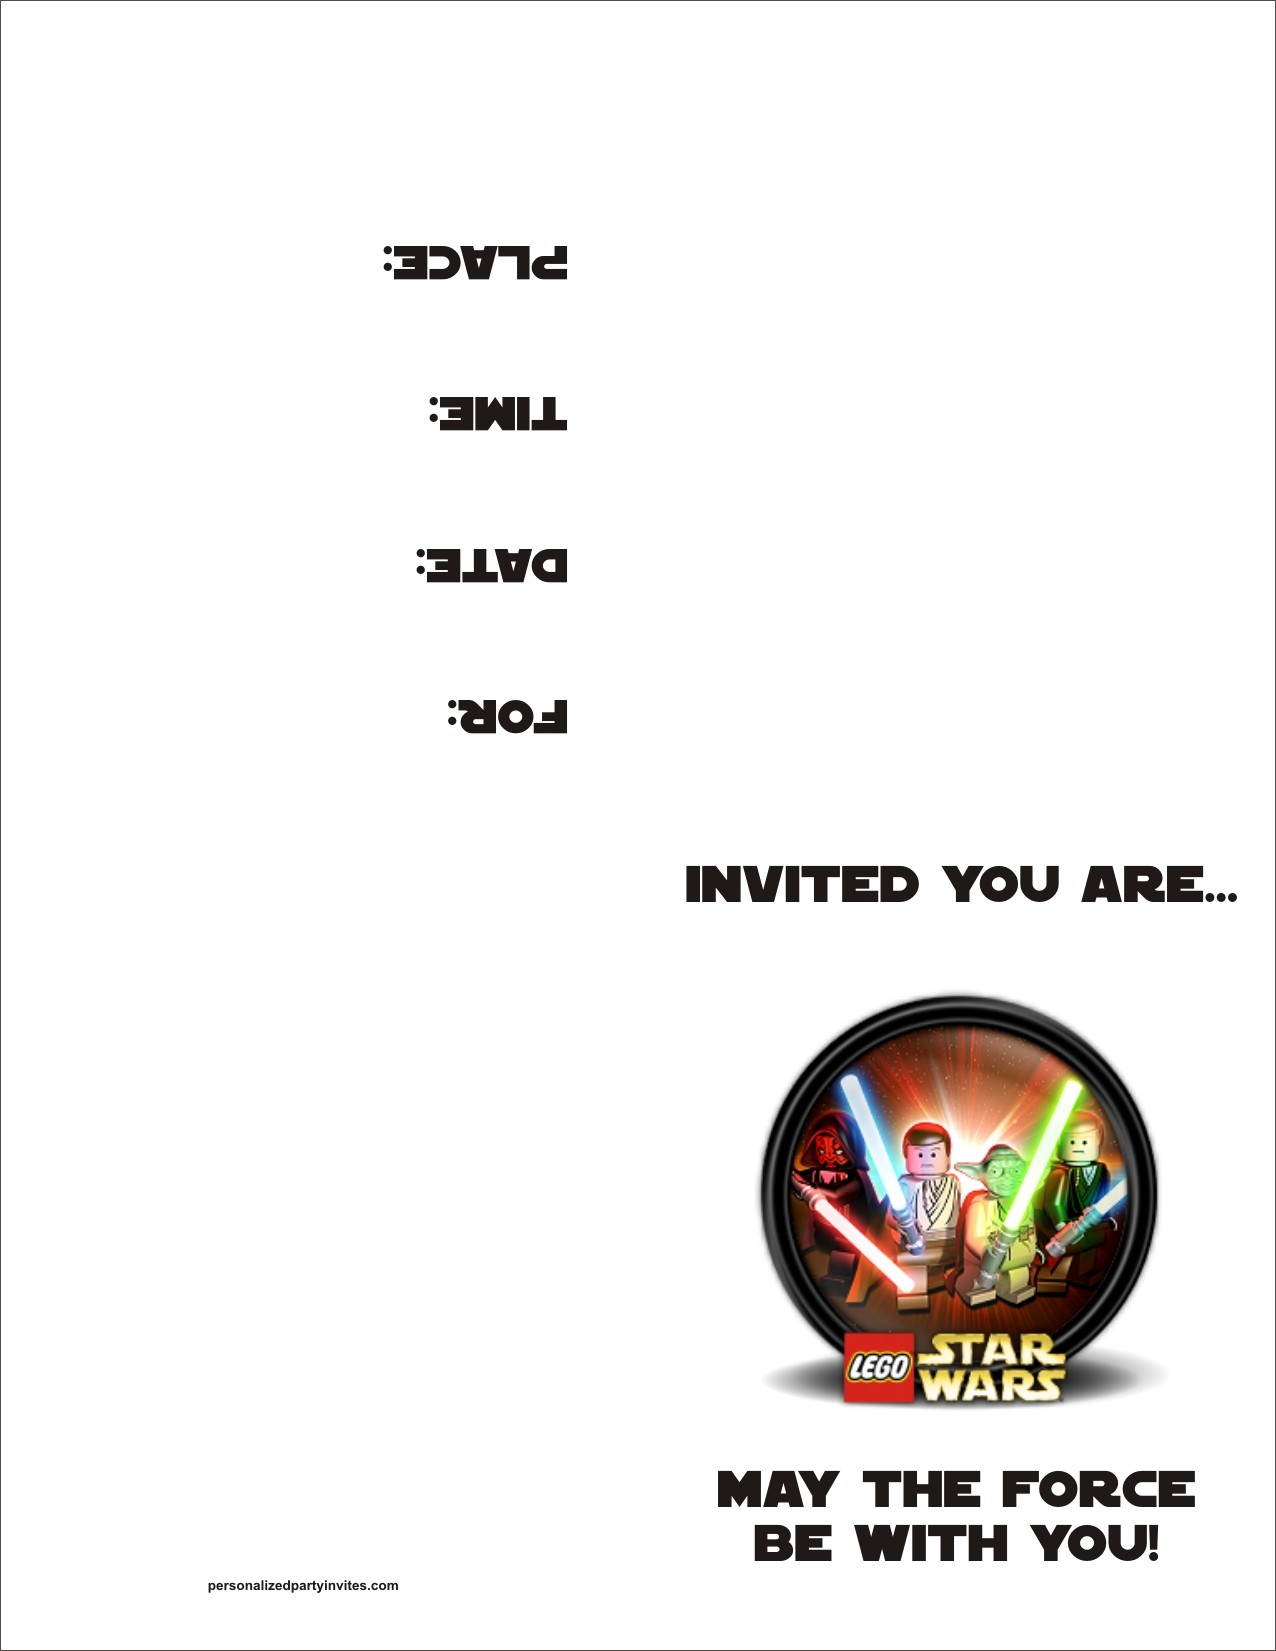 Personalized Party Invites News Lego Star Wars Free Printable - Free printable birthday party invitations templates